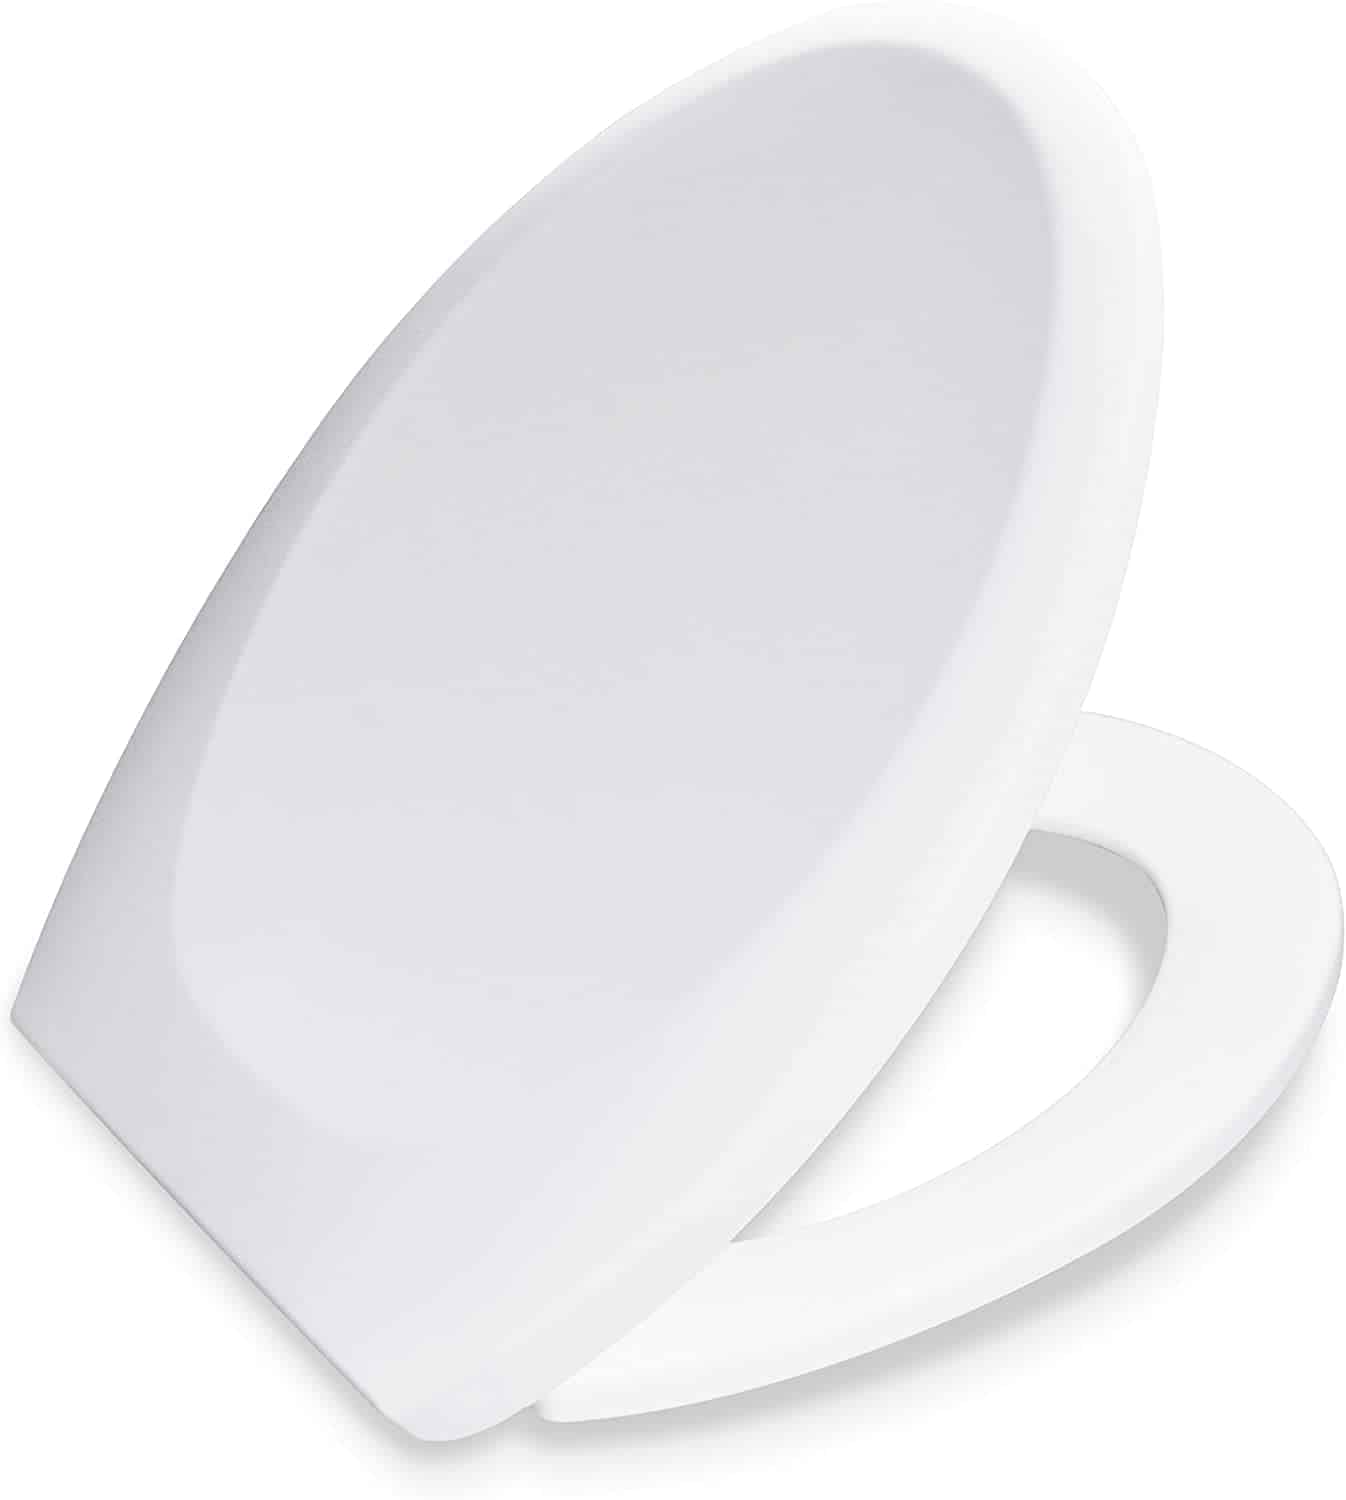 BATH ROYALE BR606-00 Premium Elongated Toilet Seat with Cover,